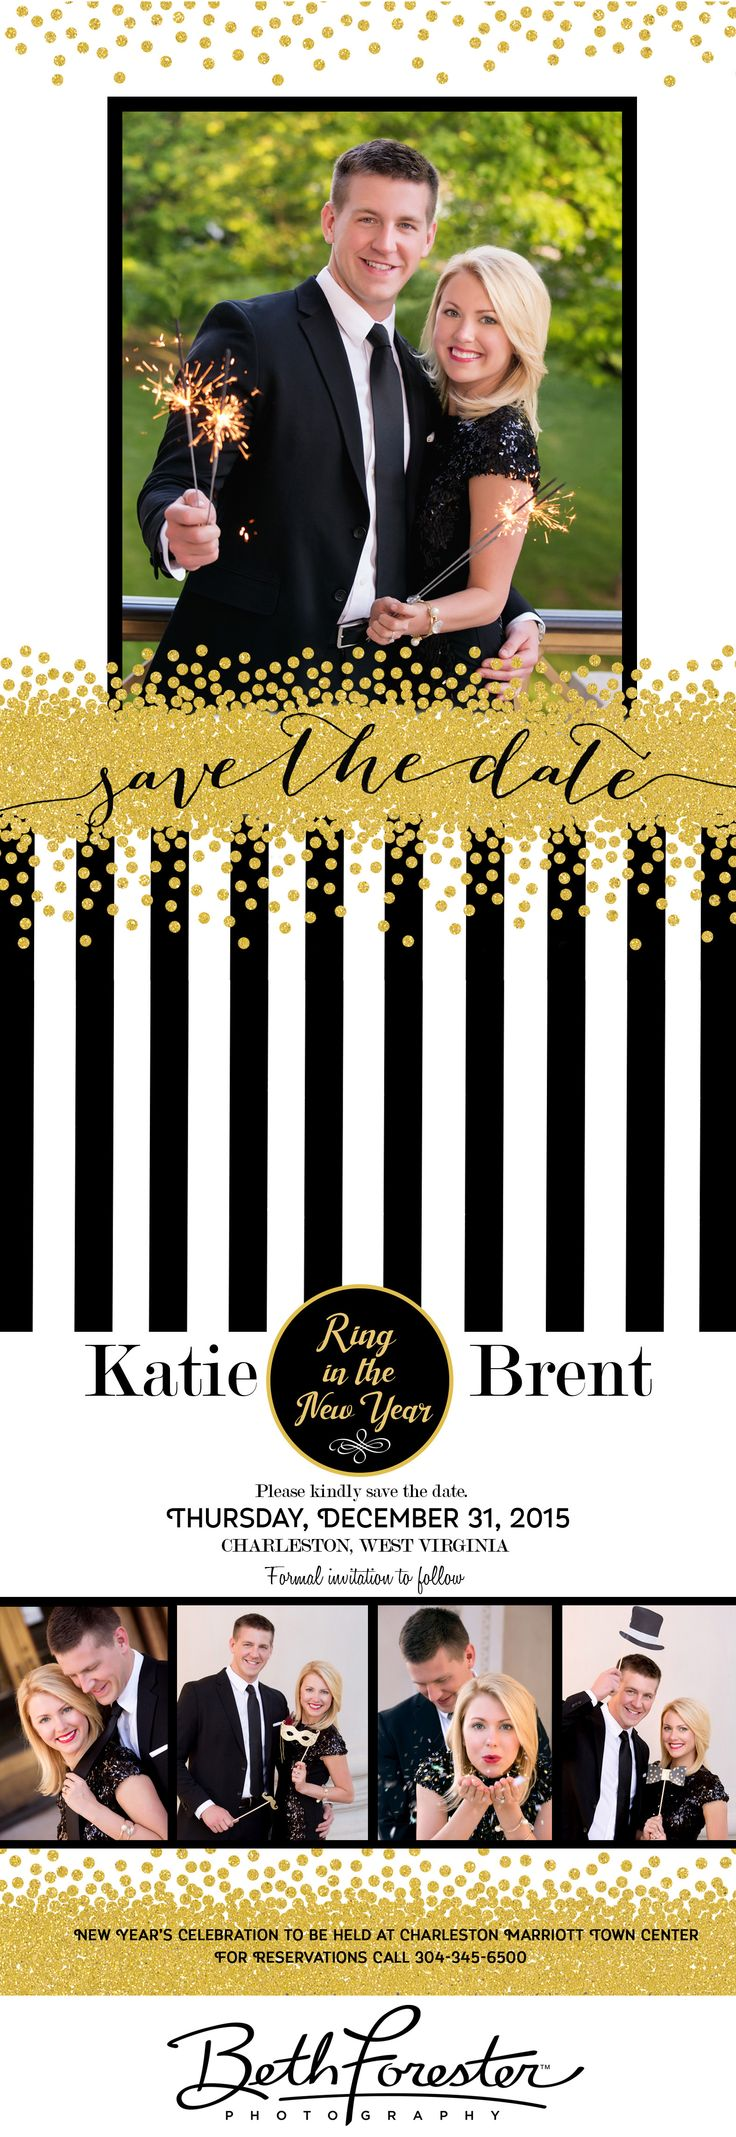 New Year's Eve | Wedding Save the Date Cards | WV wedding | Sparklers | Glitter | Back and Gold wedding ideas | New Years Eve Wedding ideas